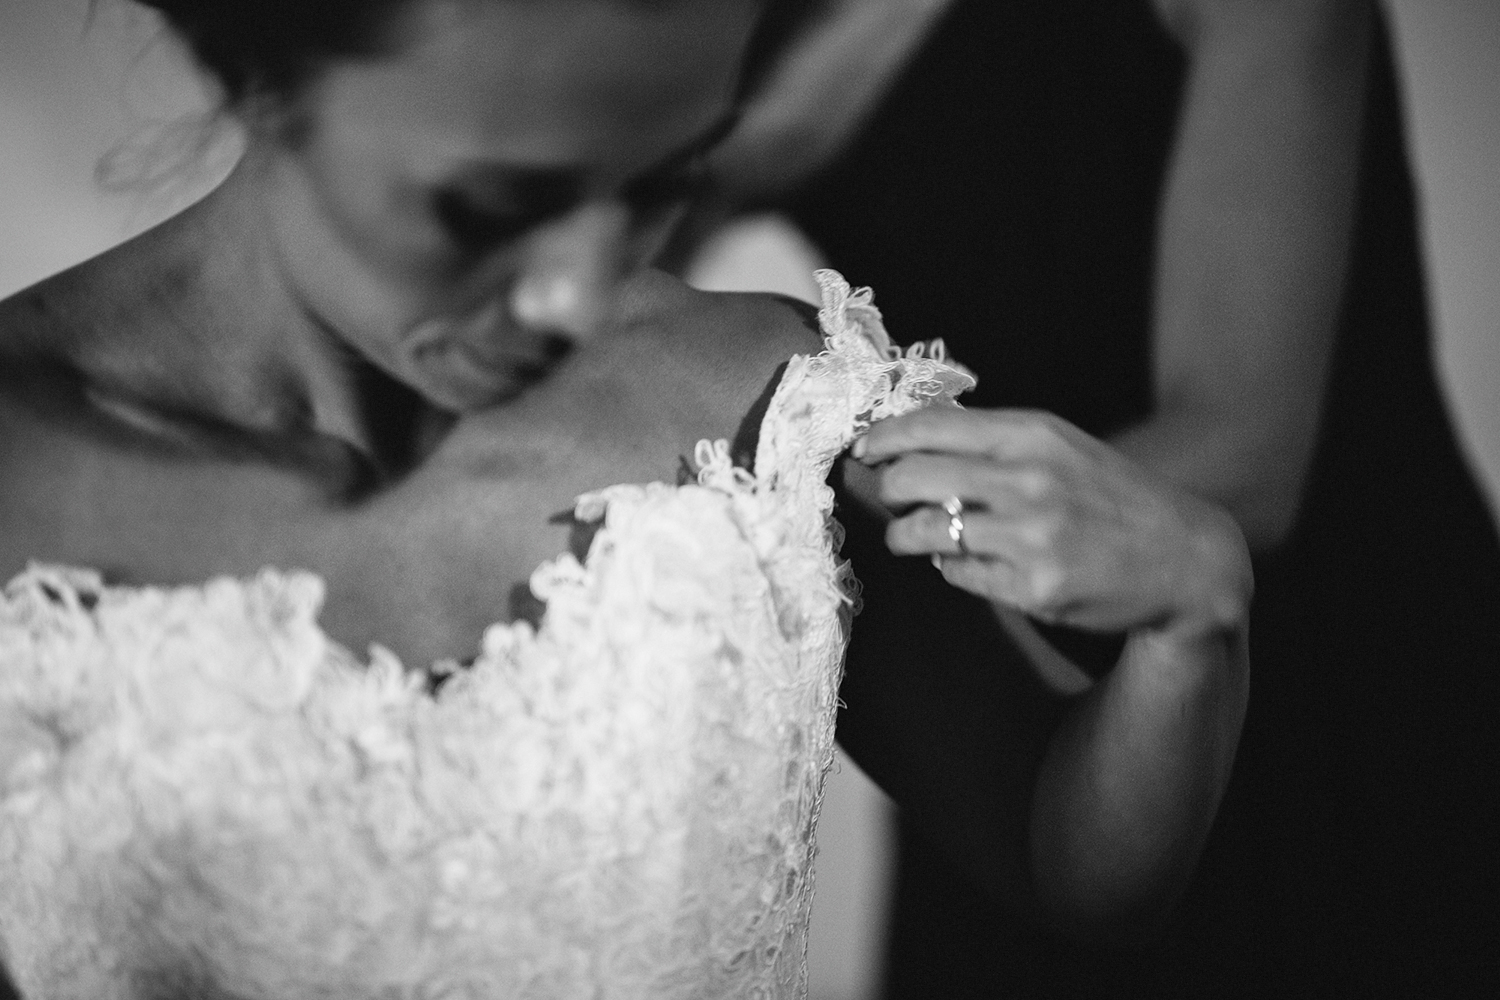 muskoka-wedding-photographer-toronto-wedding-photography-hidden-valley-resort-documentary-photojournalistic-fine-art-wedding-photography-getting-ready-bride-putting-on-lace-vintage-wedding-dress-with-bridesmaid-bw.jpg